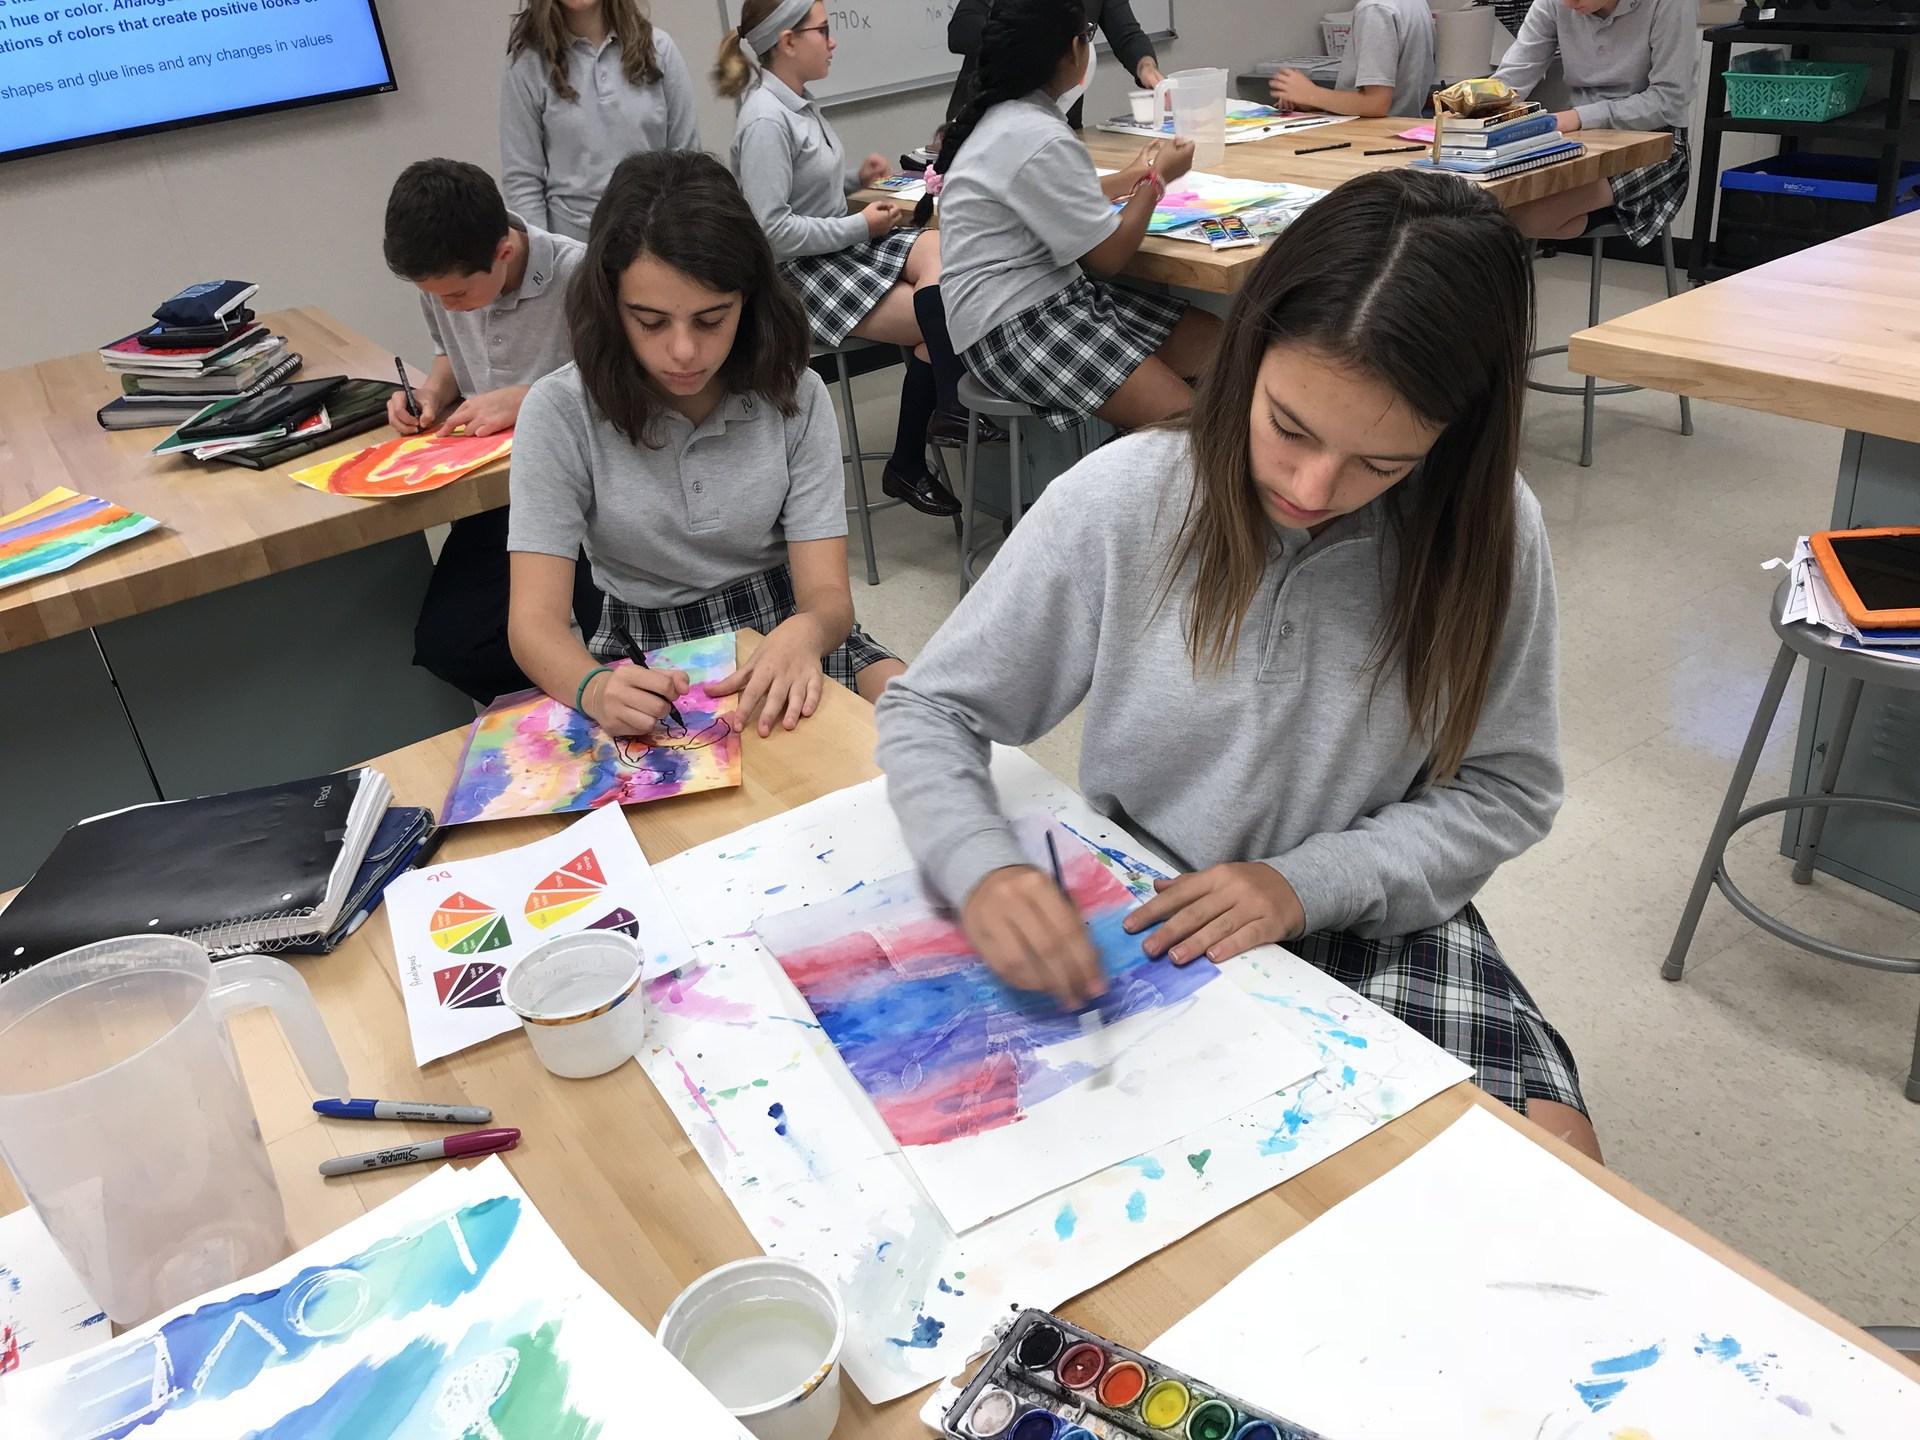 Two girl students paint pictures